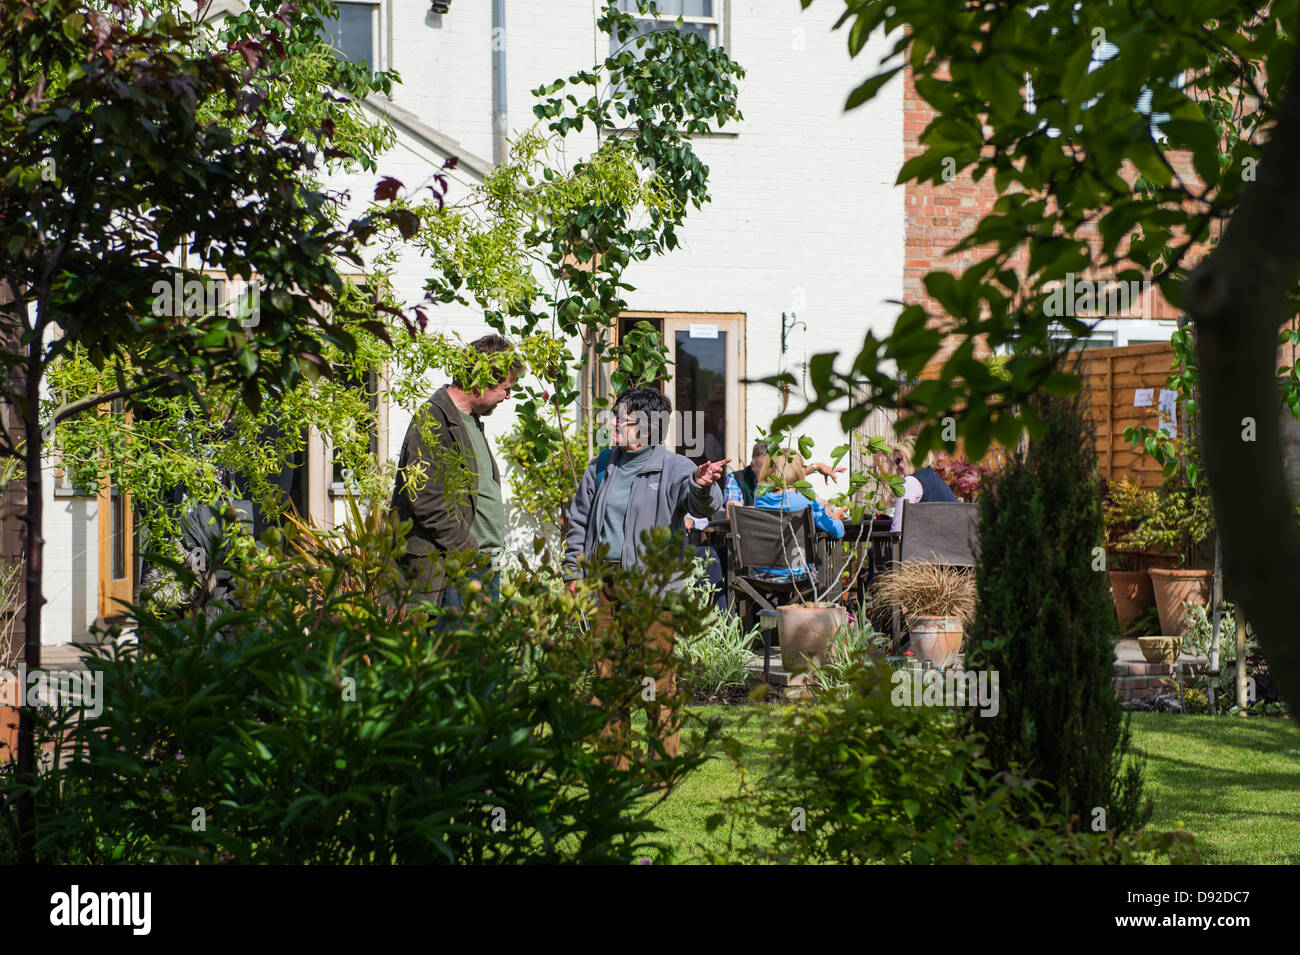 People discussing a garden at an Open Garden event in Peterborough. - Stock Image